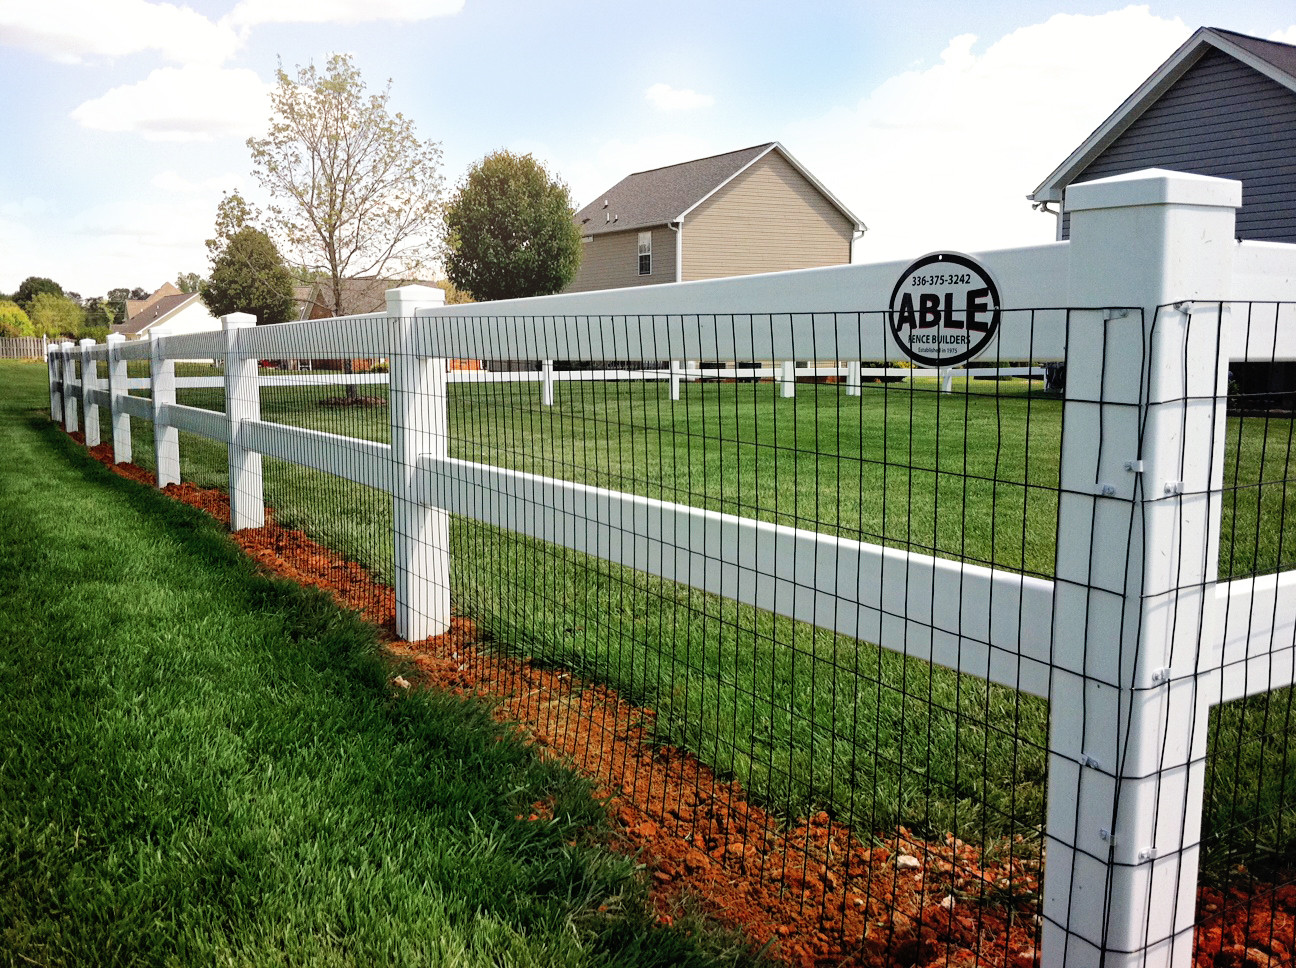 Vinyl - Able Fence Builders - Greensboro, NC